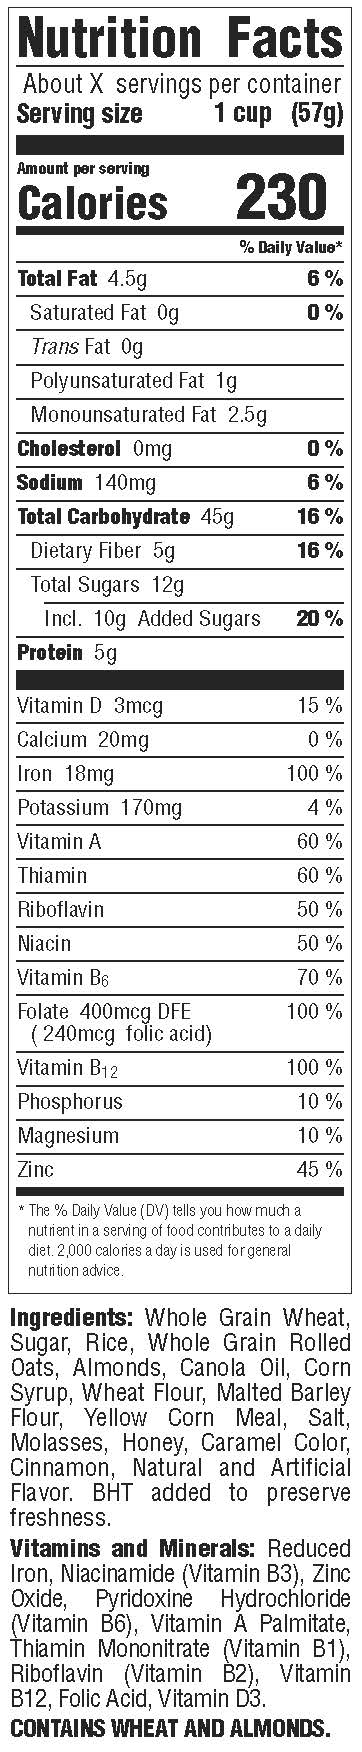 HWA-100 RTE - HBO Whole Grain Almond Crunch - NFP